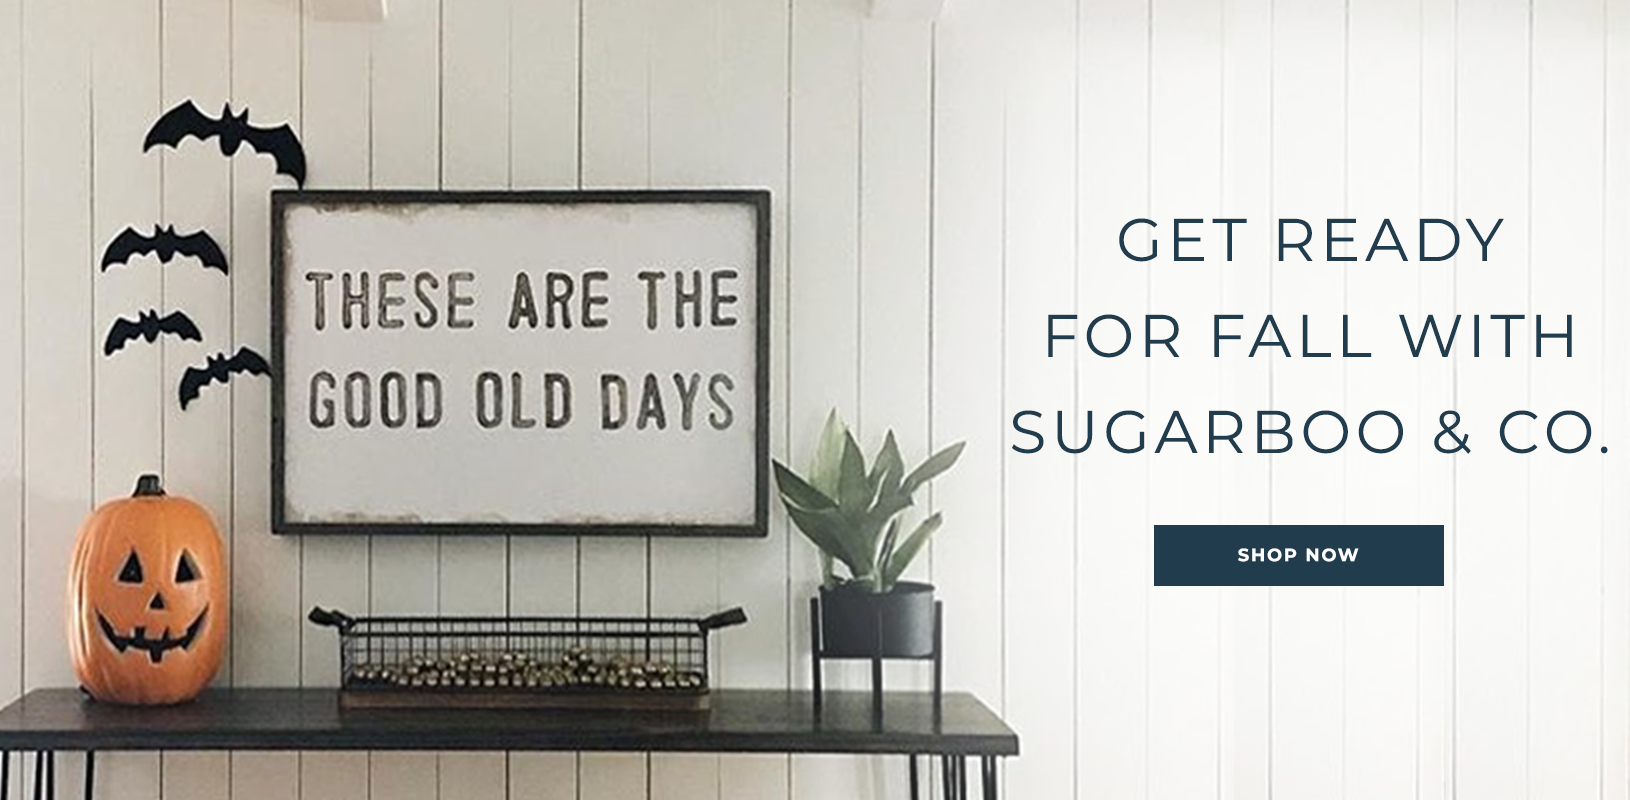 Get Ready for Fall with Sugarboo and Co